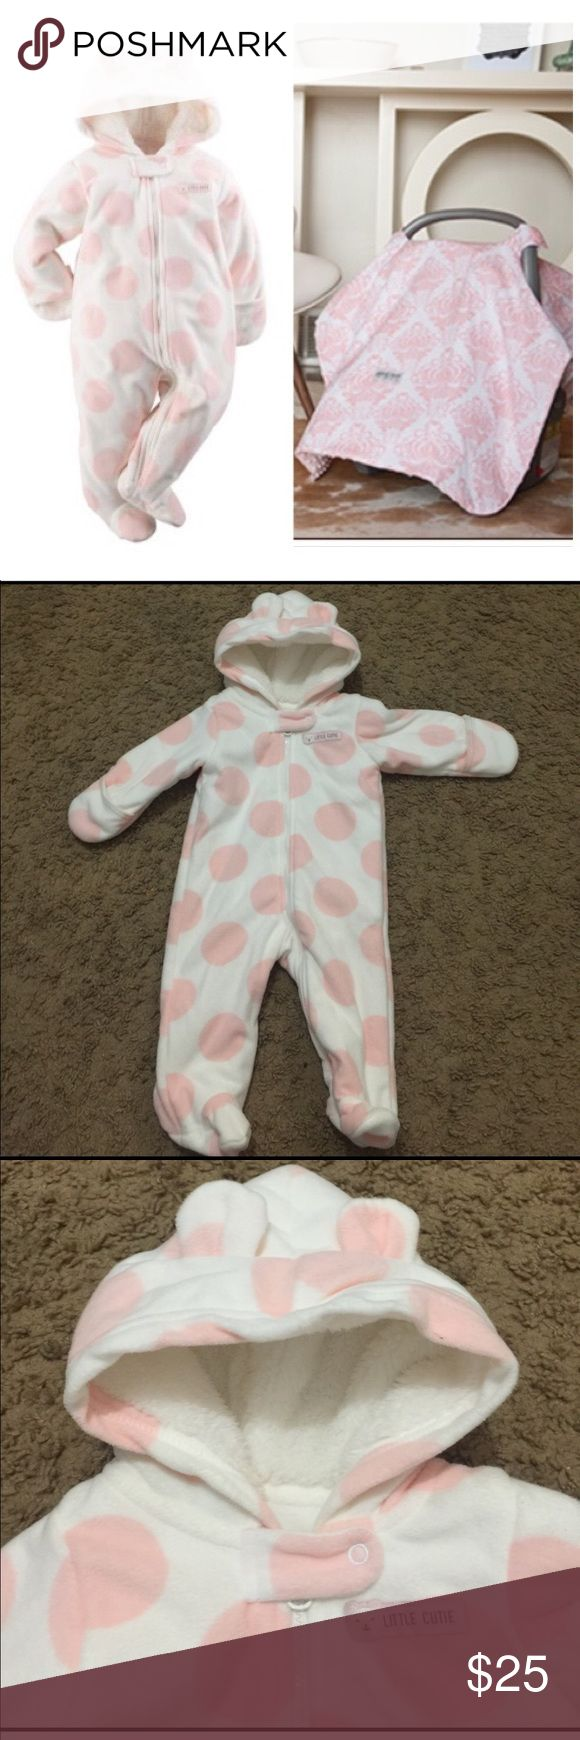 Baby girl snow suit and carseat canopy bundle Beautiful pink fleece snow suit for baby girl size 3mo in excellent condition AND brand new, never opened, Carseat Canopy in Angelina print. GREAT DEAL. Other